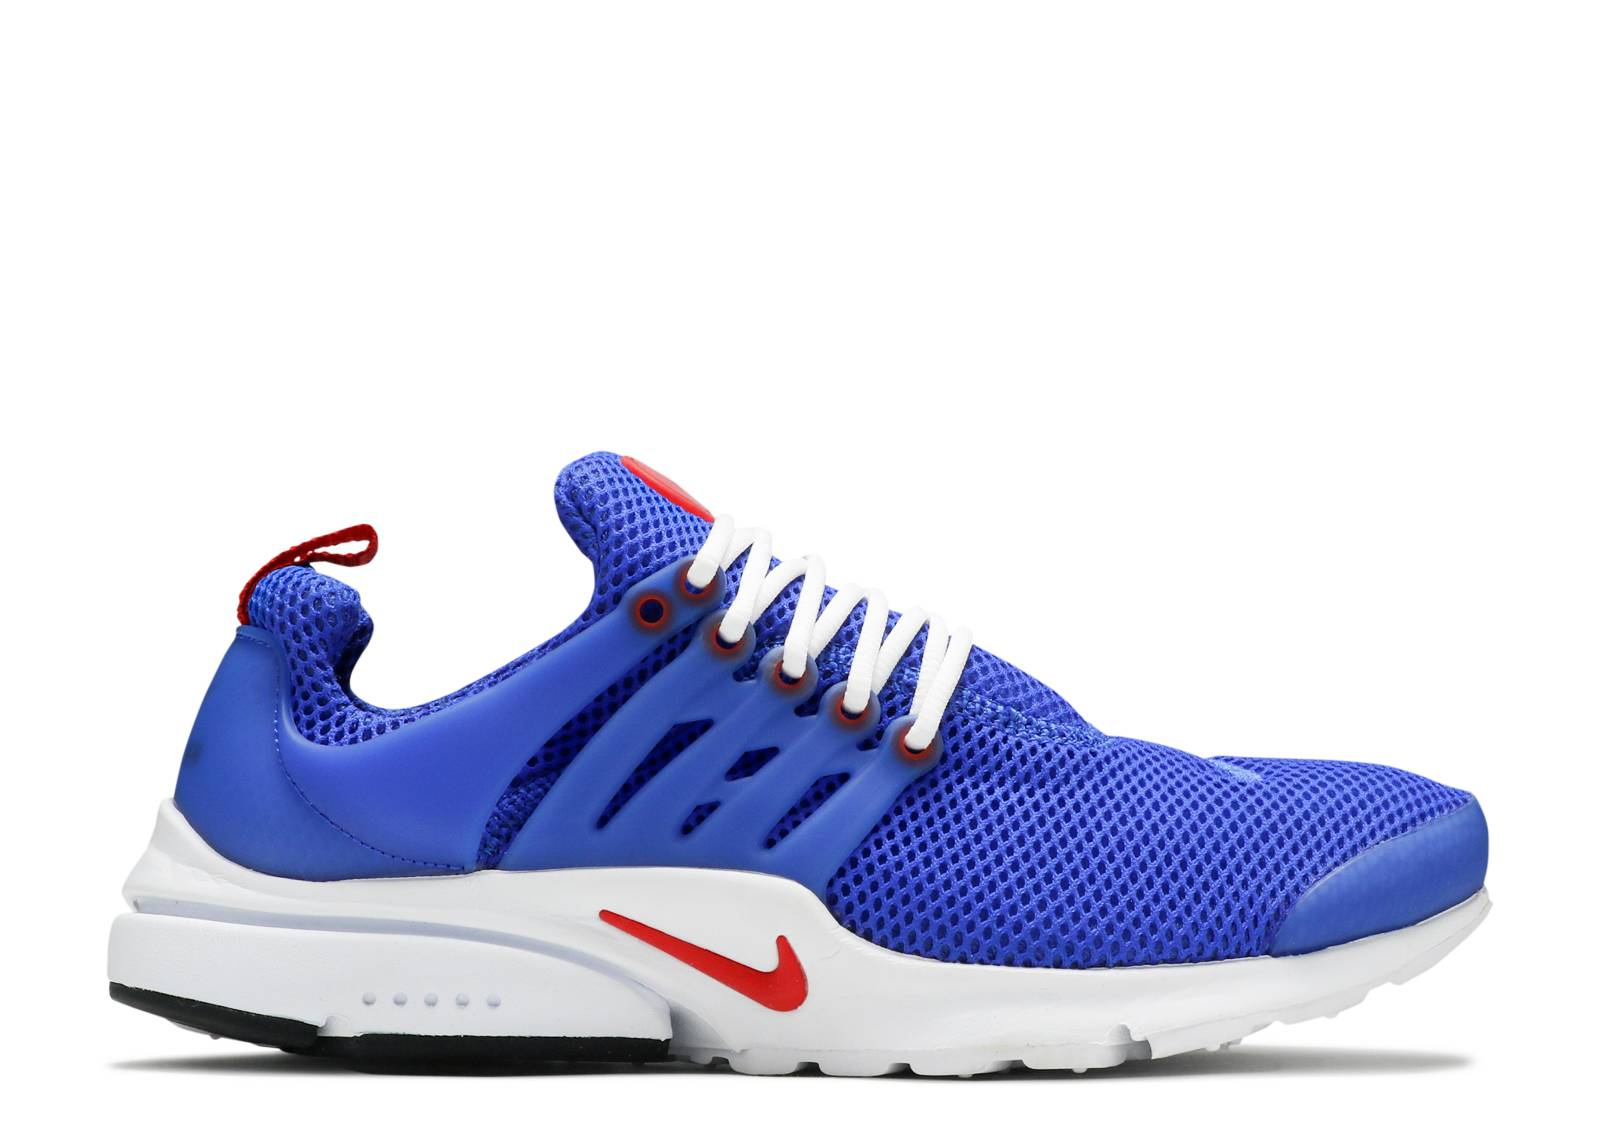 9293e8bb867bd4 NIKE AIR PRESTO ESSENTIAL - Nike - 848187 408 - racer blue ...